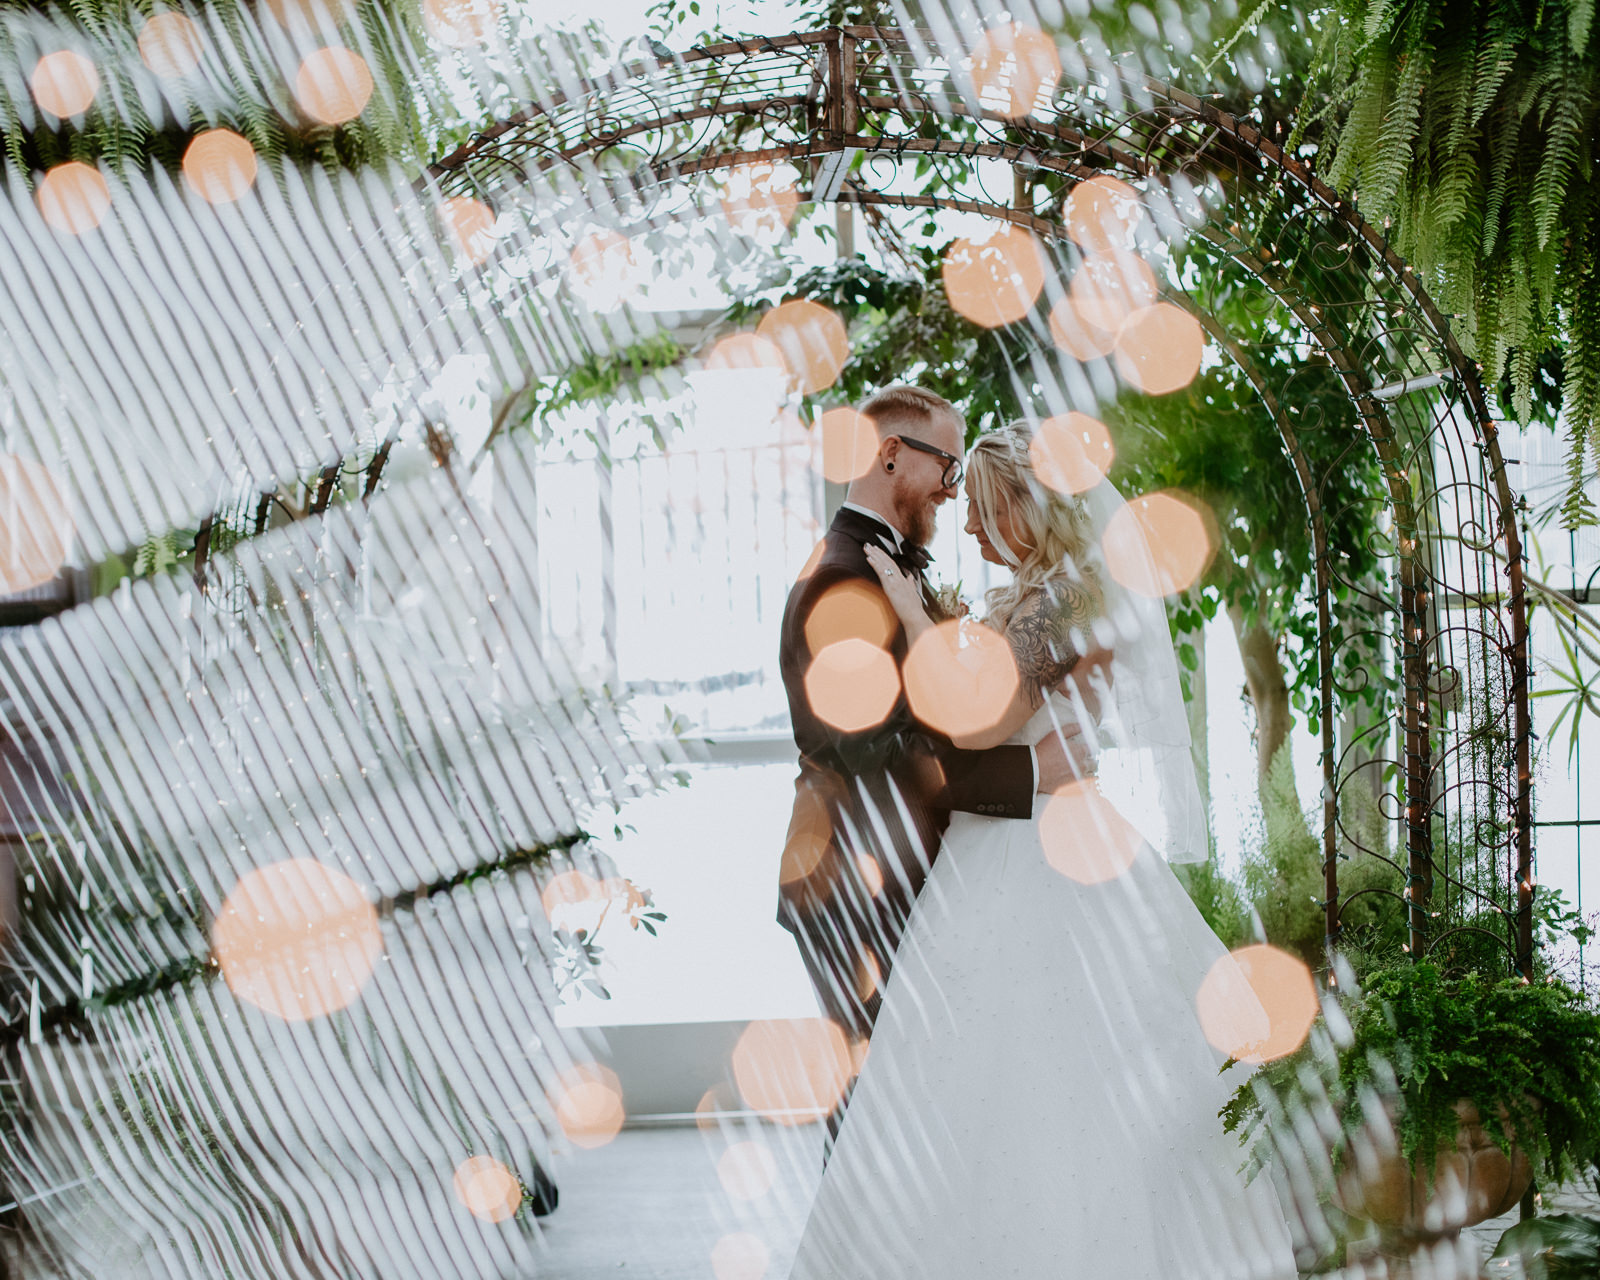 Double exposure of lights and a wed couple dancing